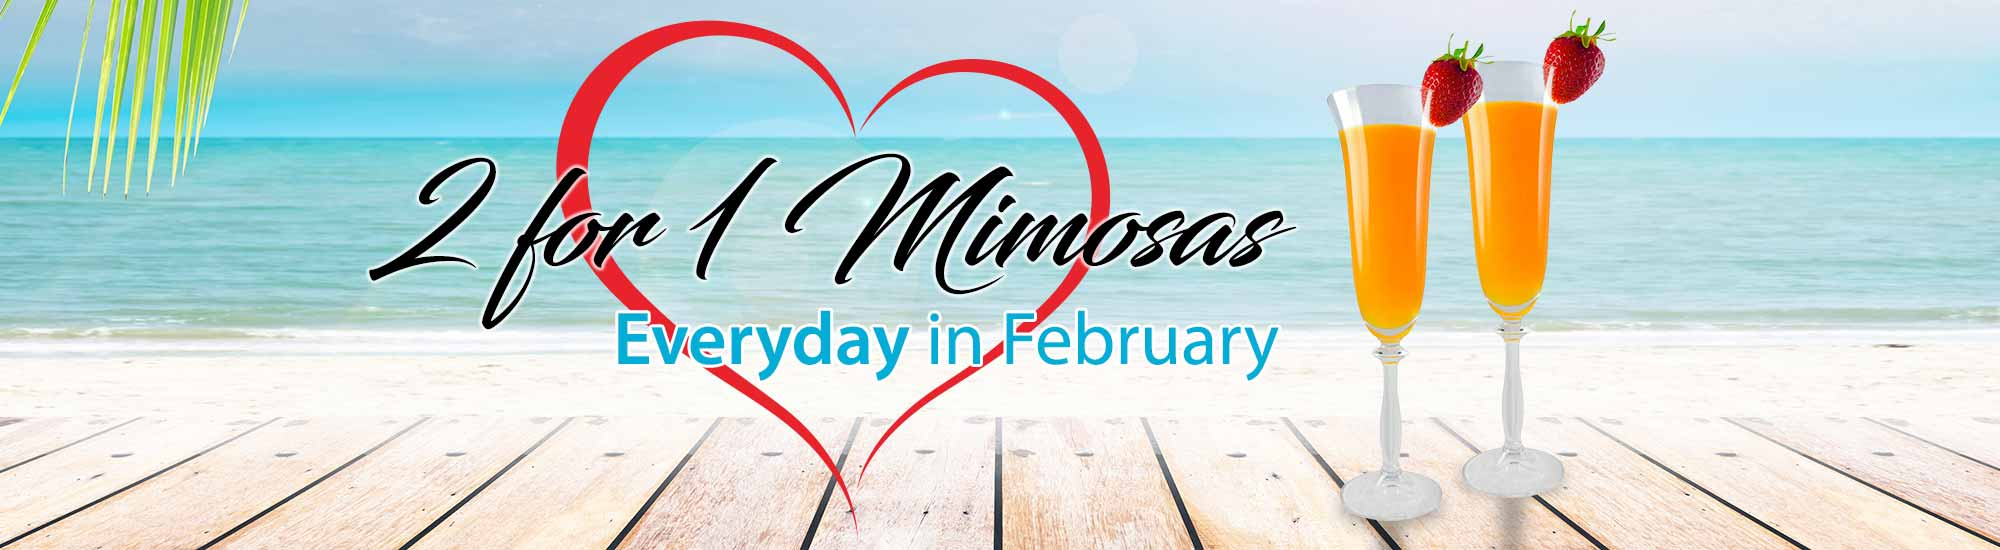 Frontpage-2for1-Mimosas